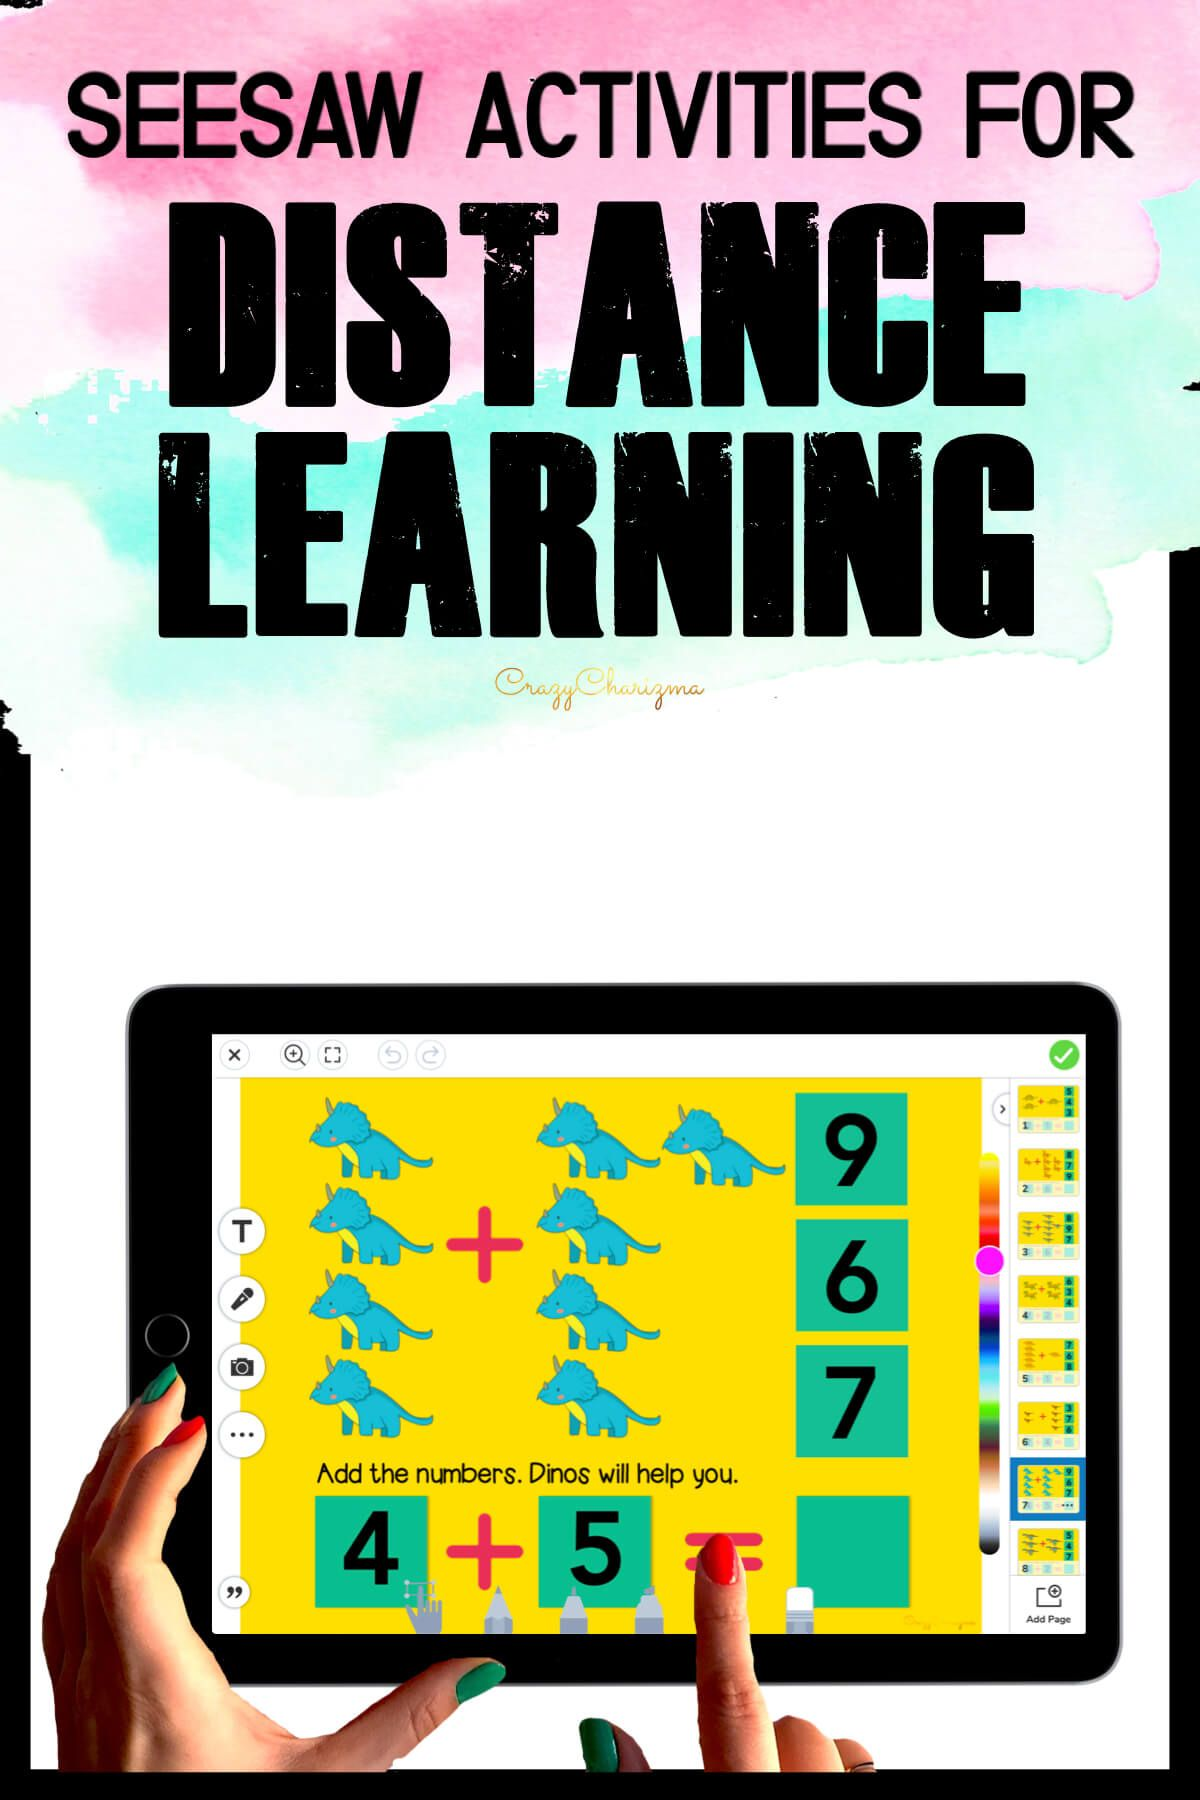 Need fun activities to use in Seesaw? Looking for an engaging Addition to 10 practice for distance learning? Have fun with this math center. Kids will add numbers and drag moveable pieces with the correct answer. Pictures of dinos will help!